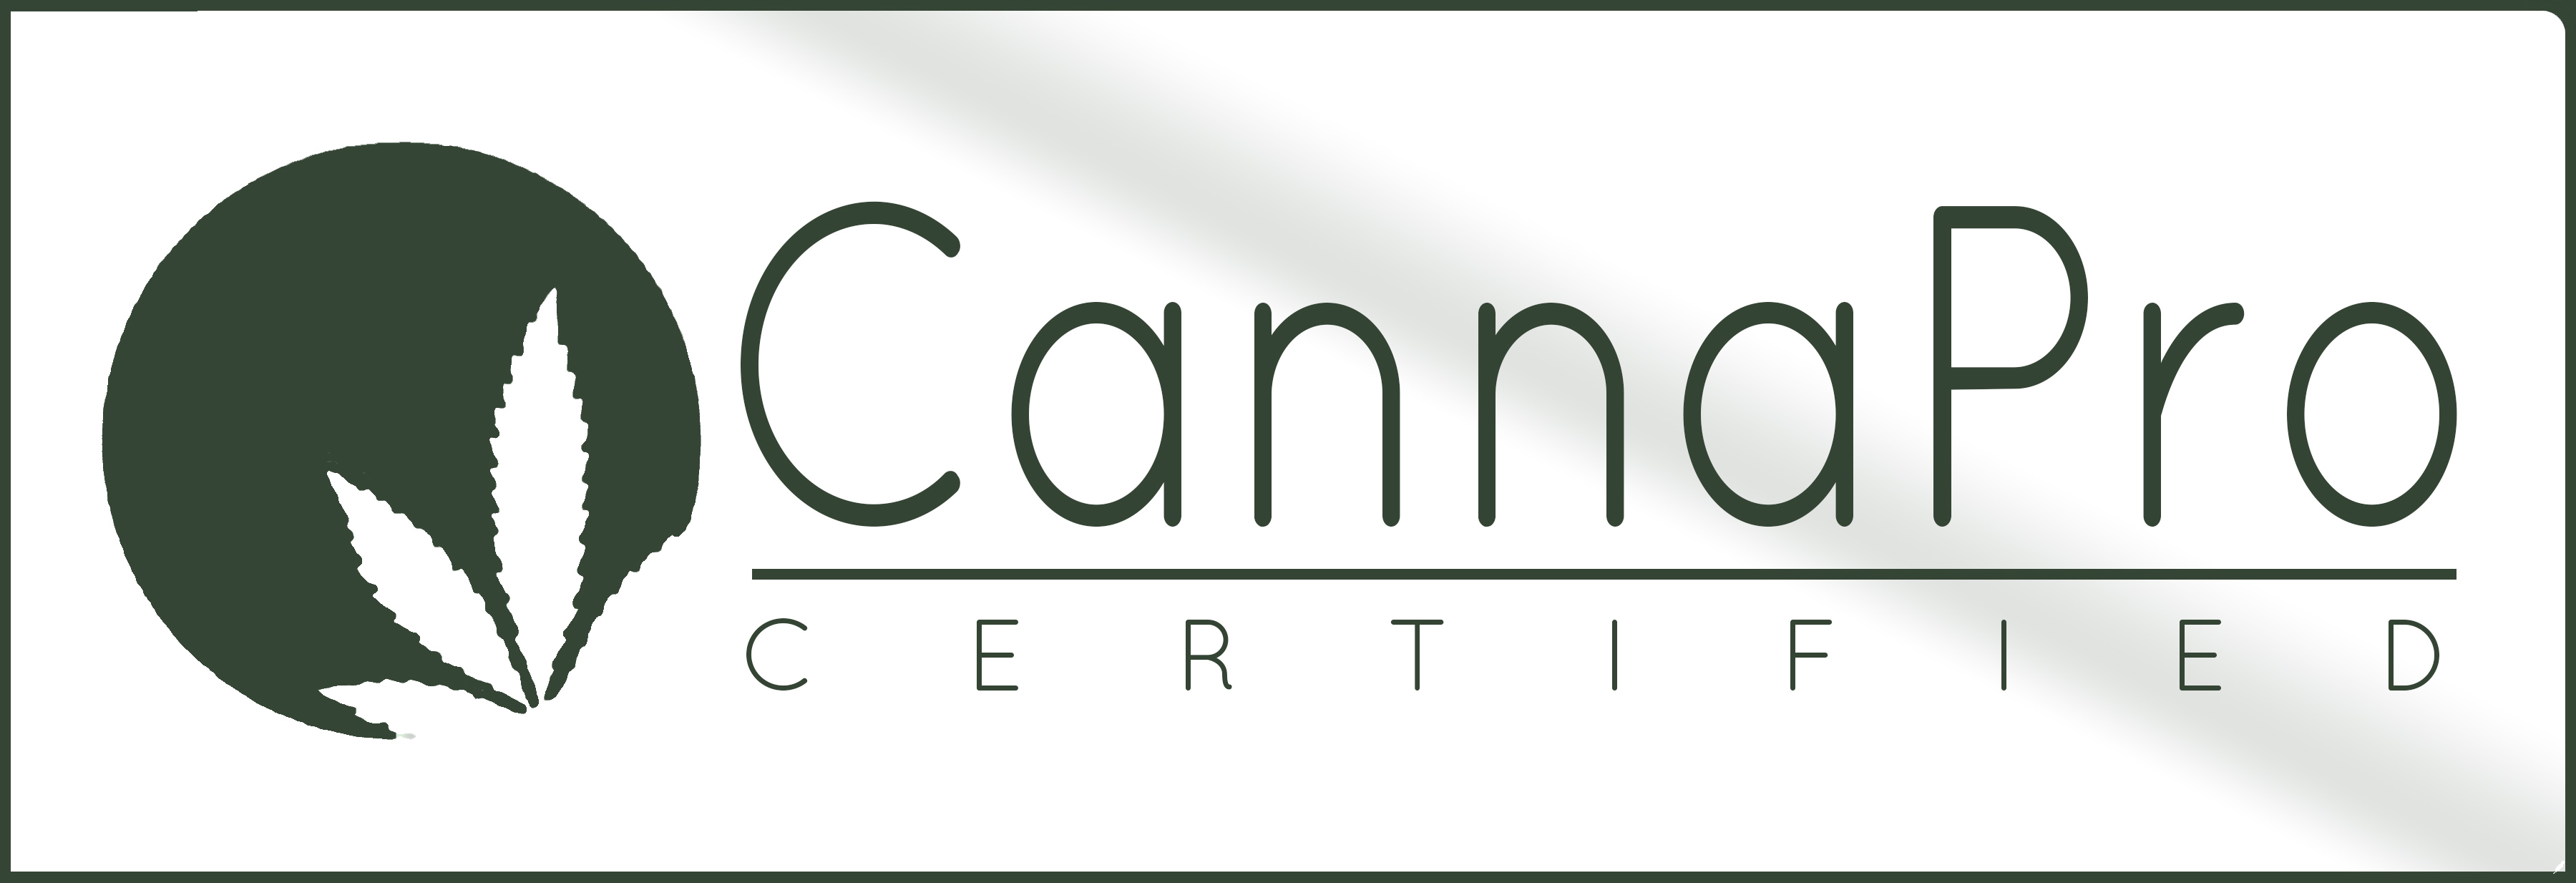 cannapro certfied